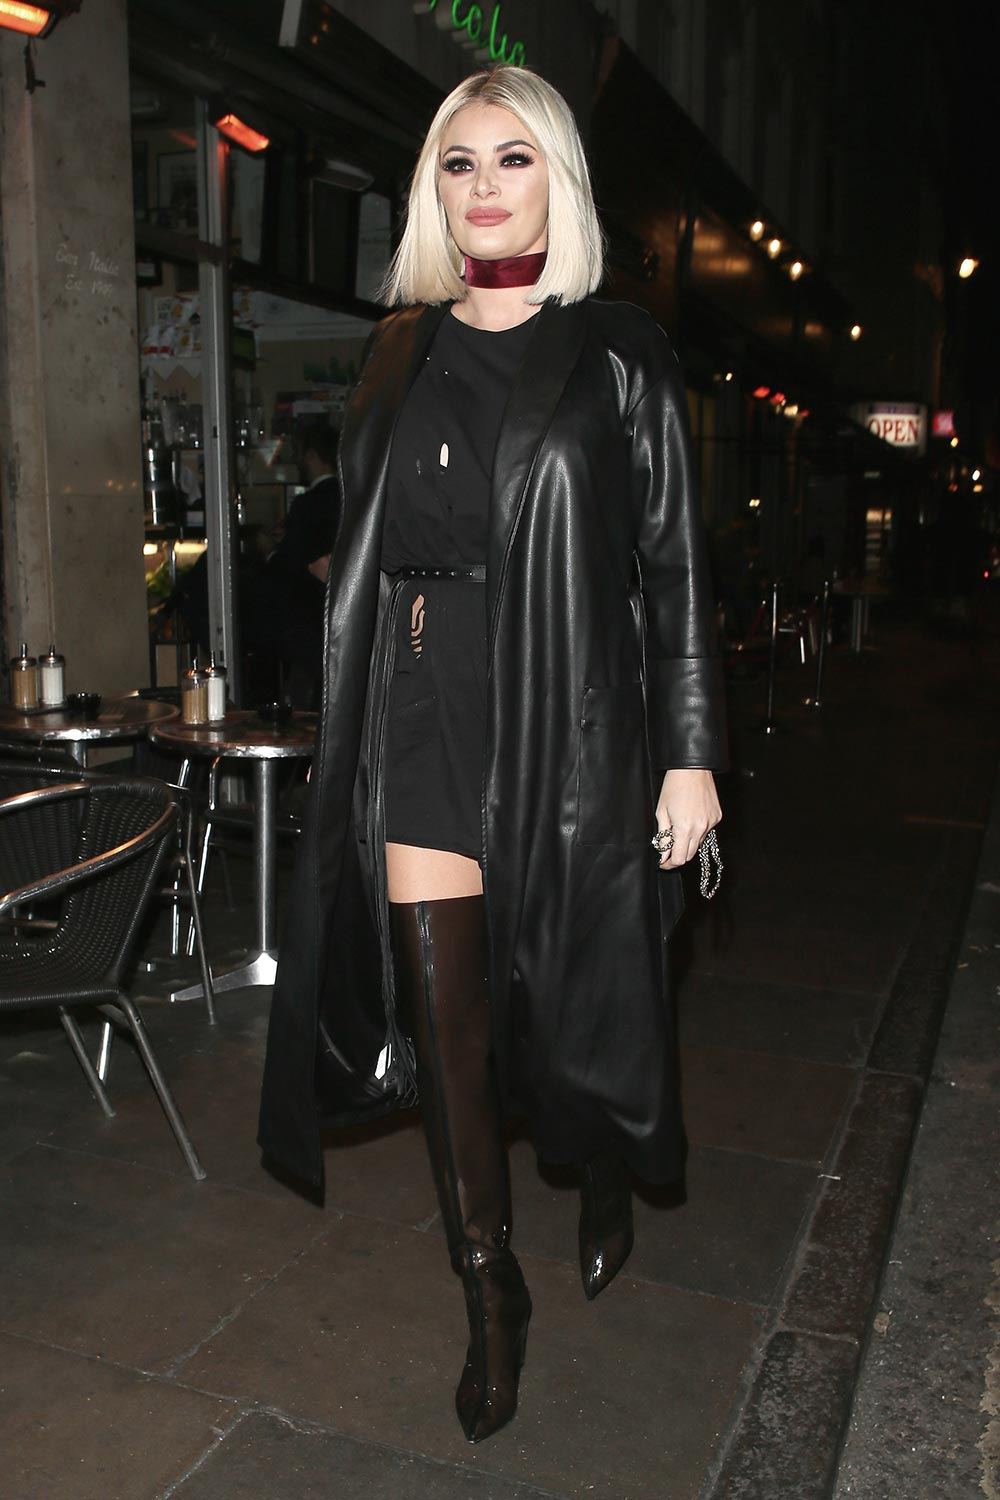 Chloe Sims celebrating her 35th Birthday at Little Italy restaurant